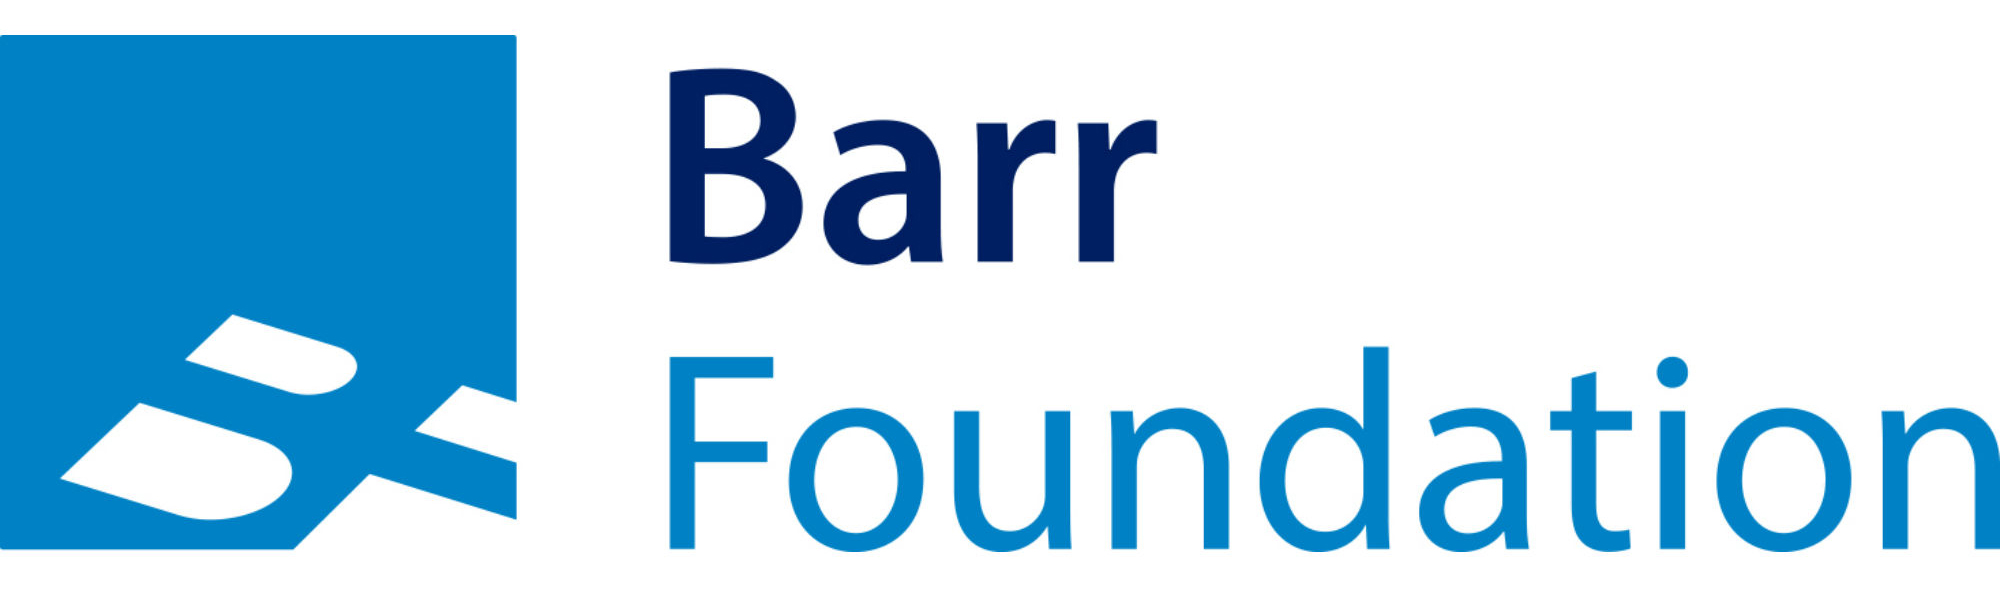 barr-foundation_OnLight.jpg